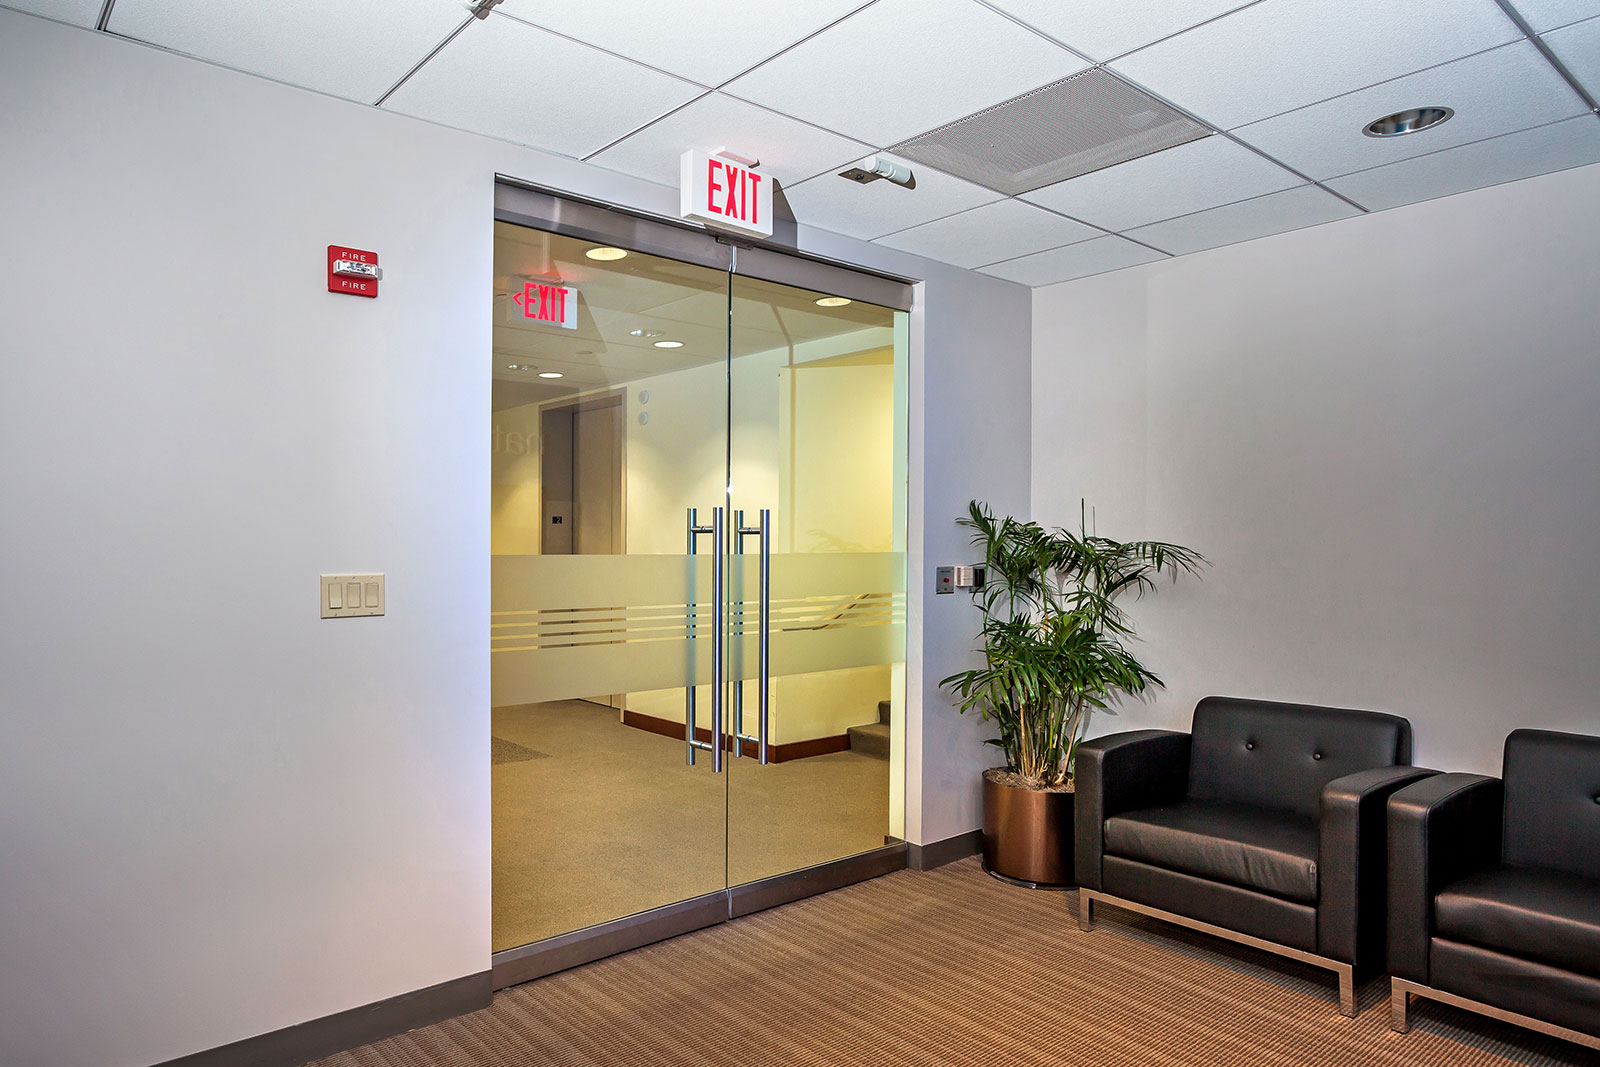 Commercial Branded Environment, �National Grid Corporate Interior, Office Design�